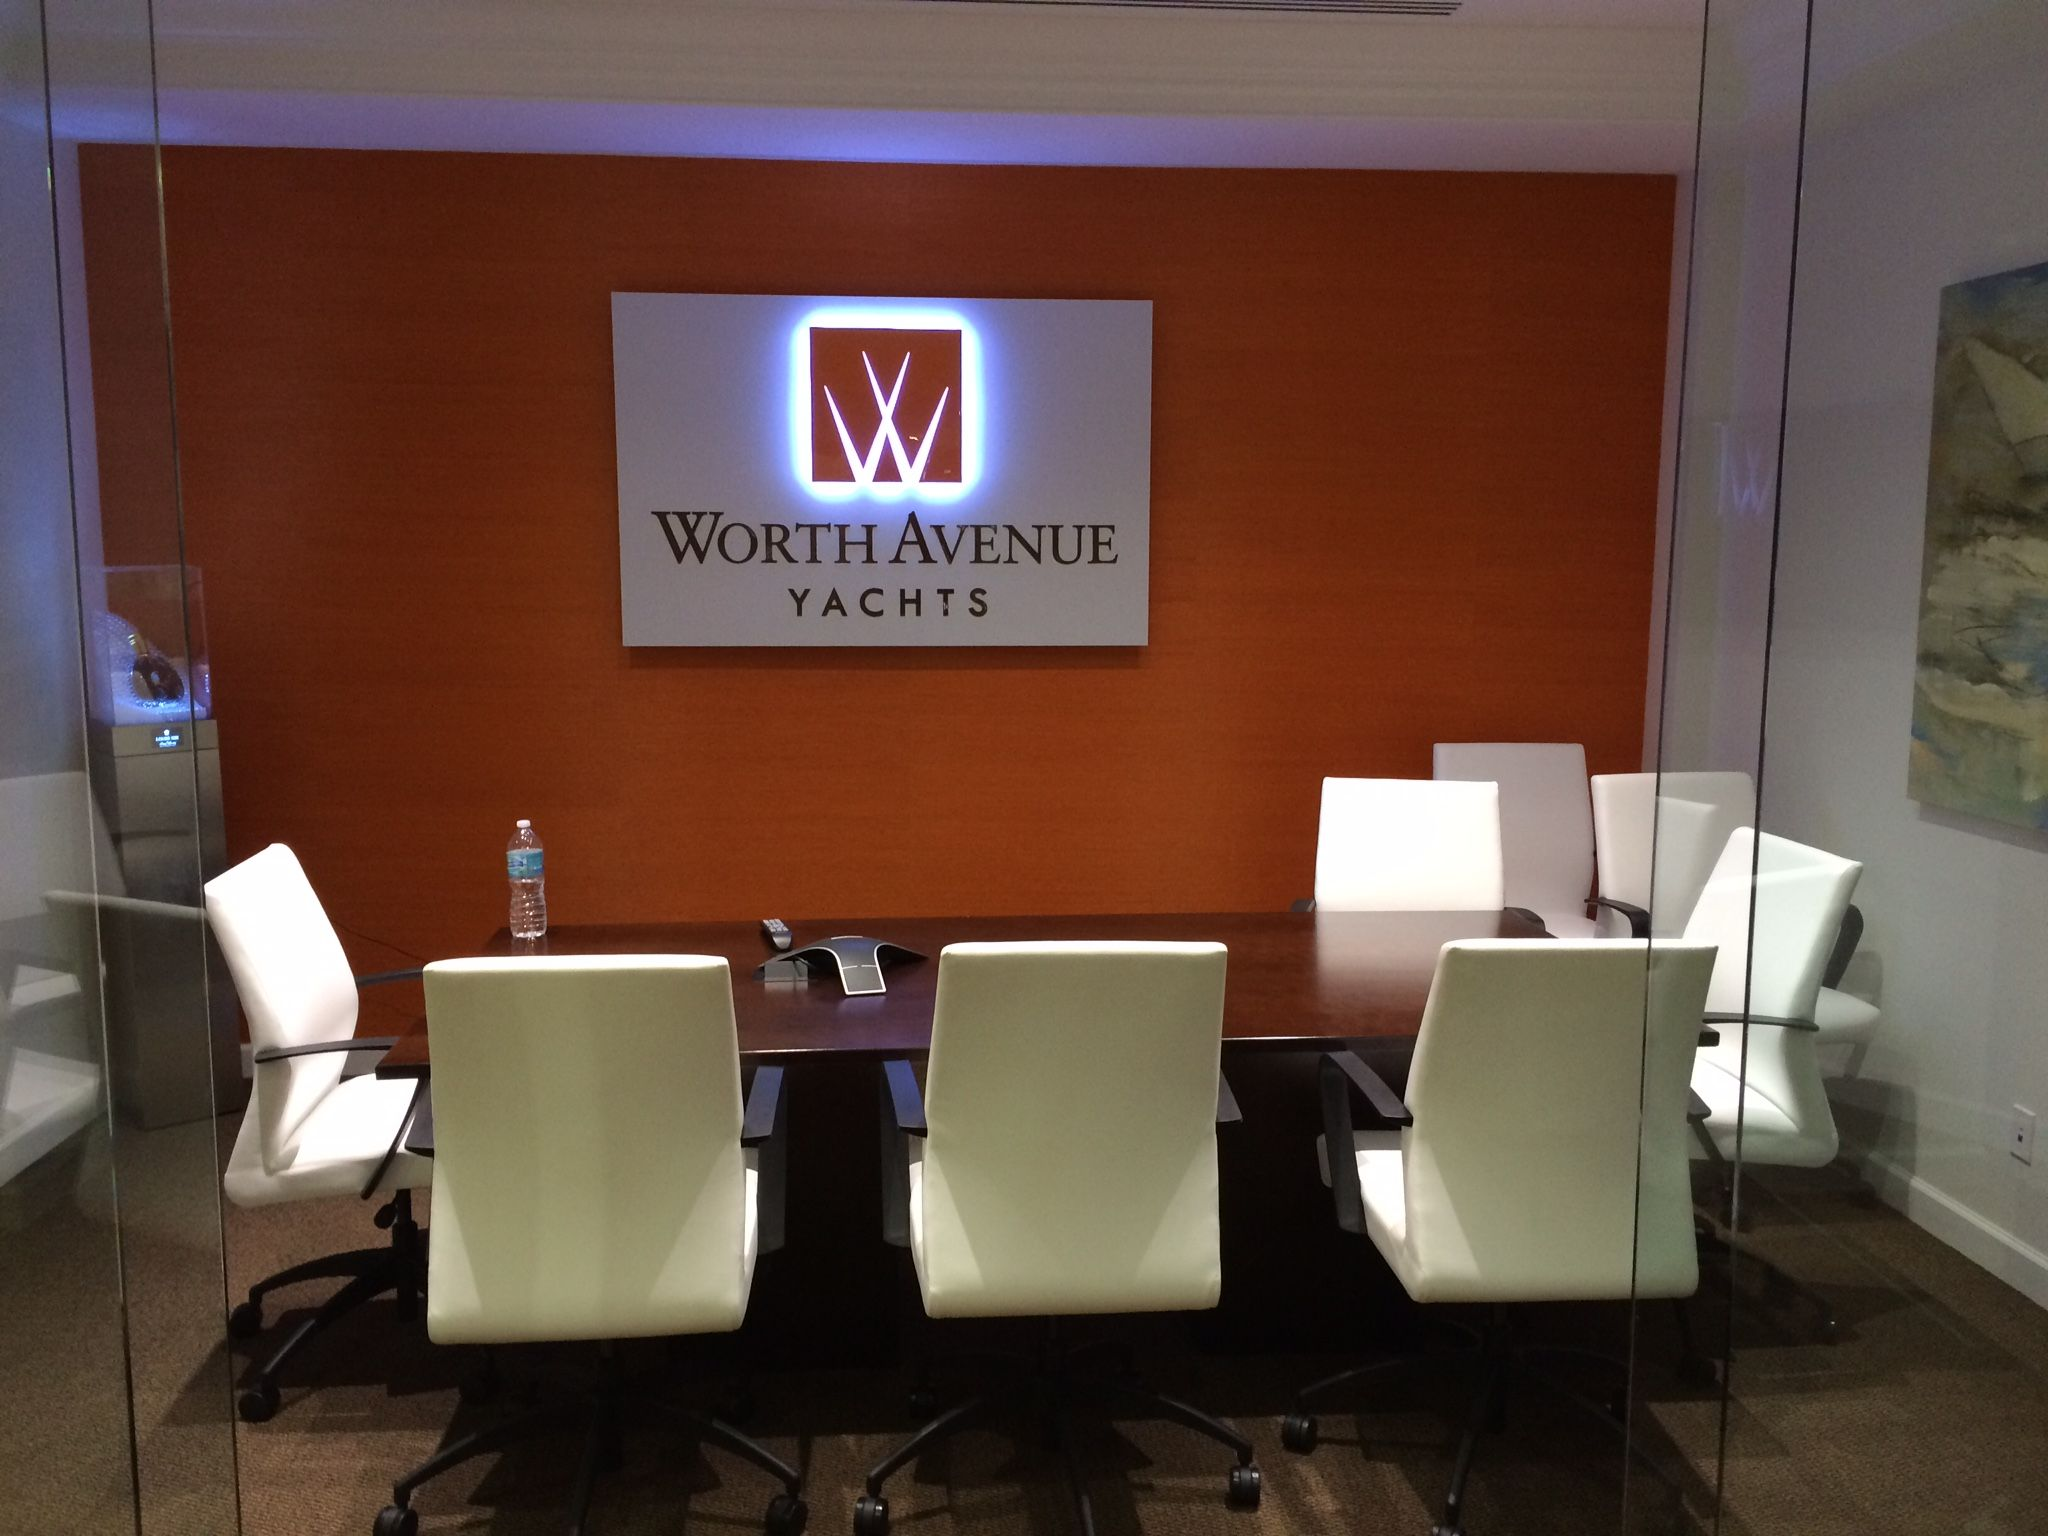 With Worth Avenue Yachtss New Installation Of Our Sri Lanka Wallcovering In Their Corporate Office Conference